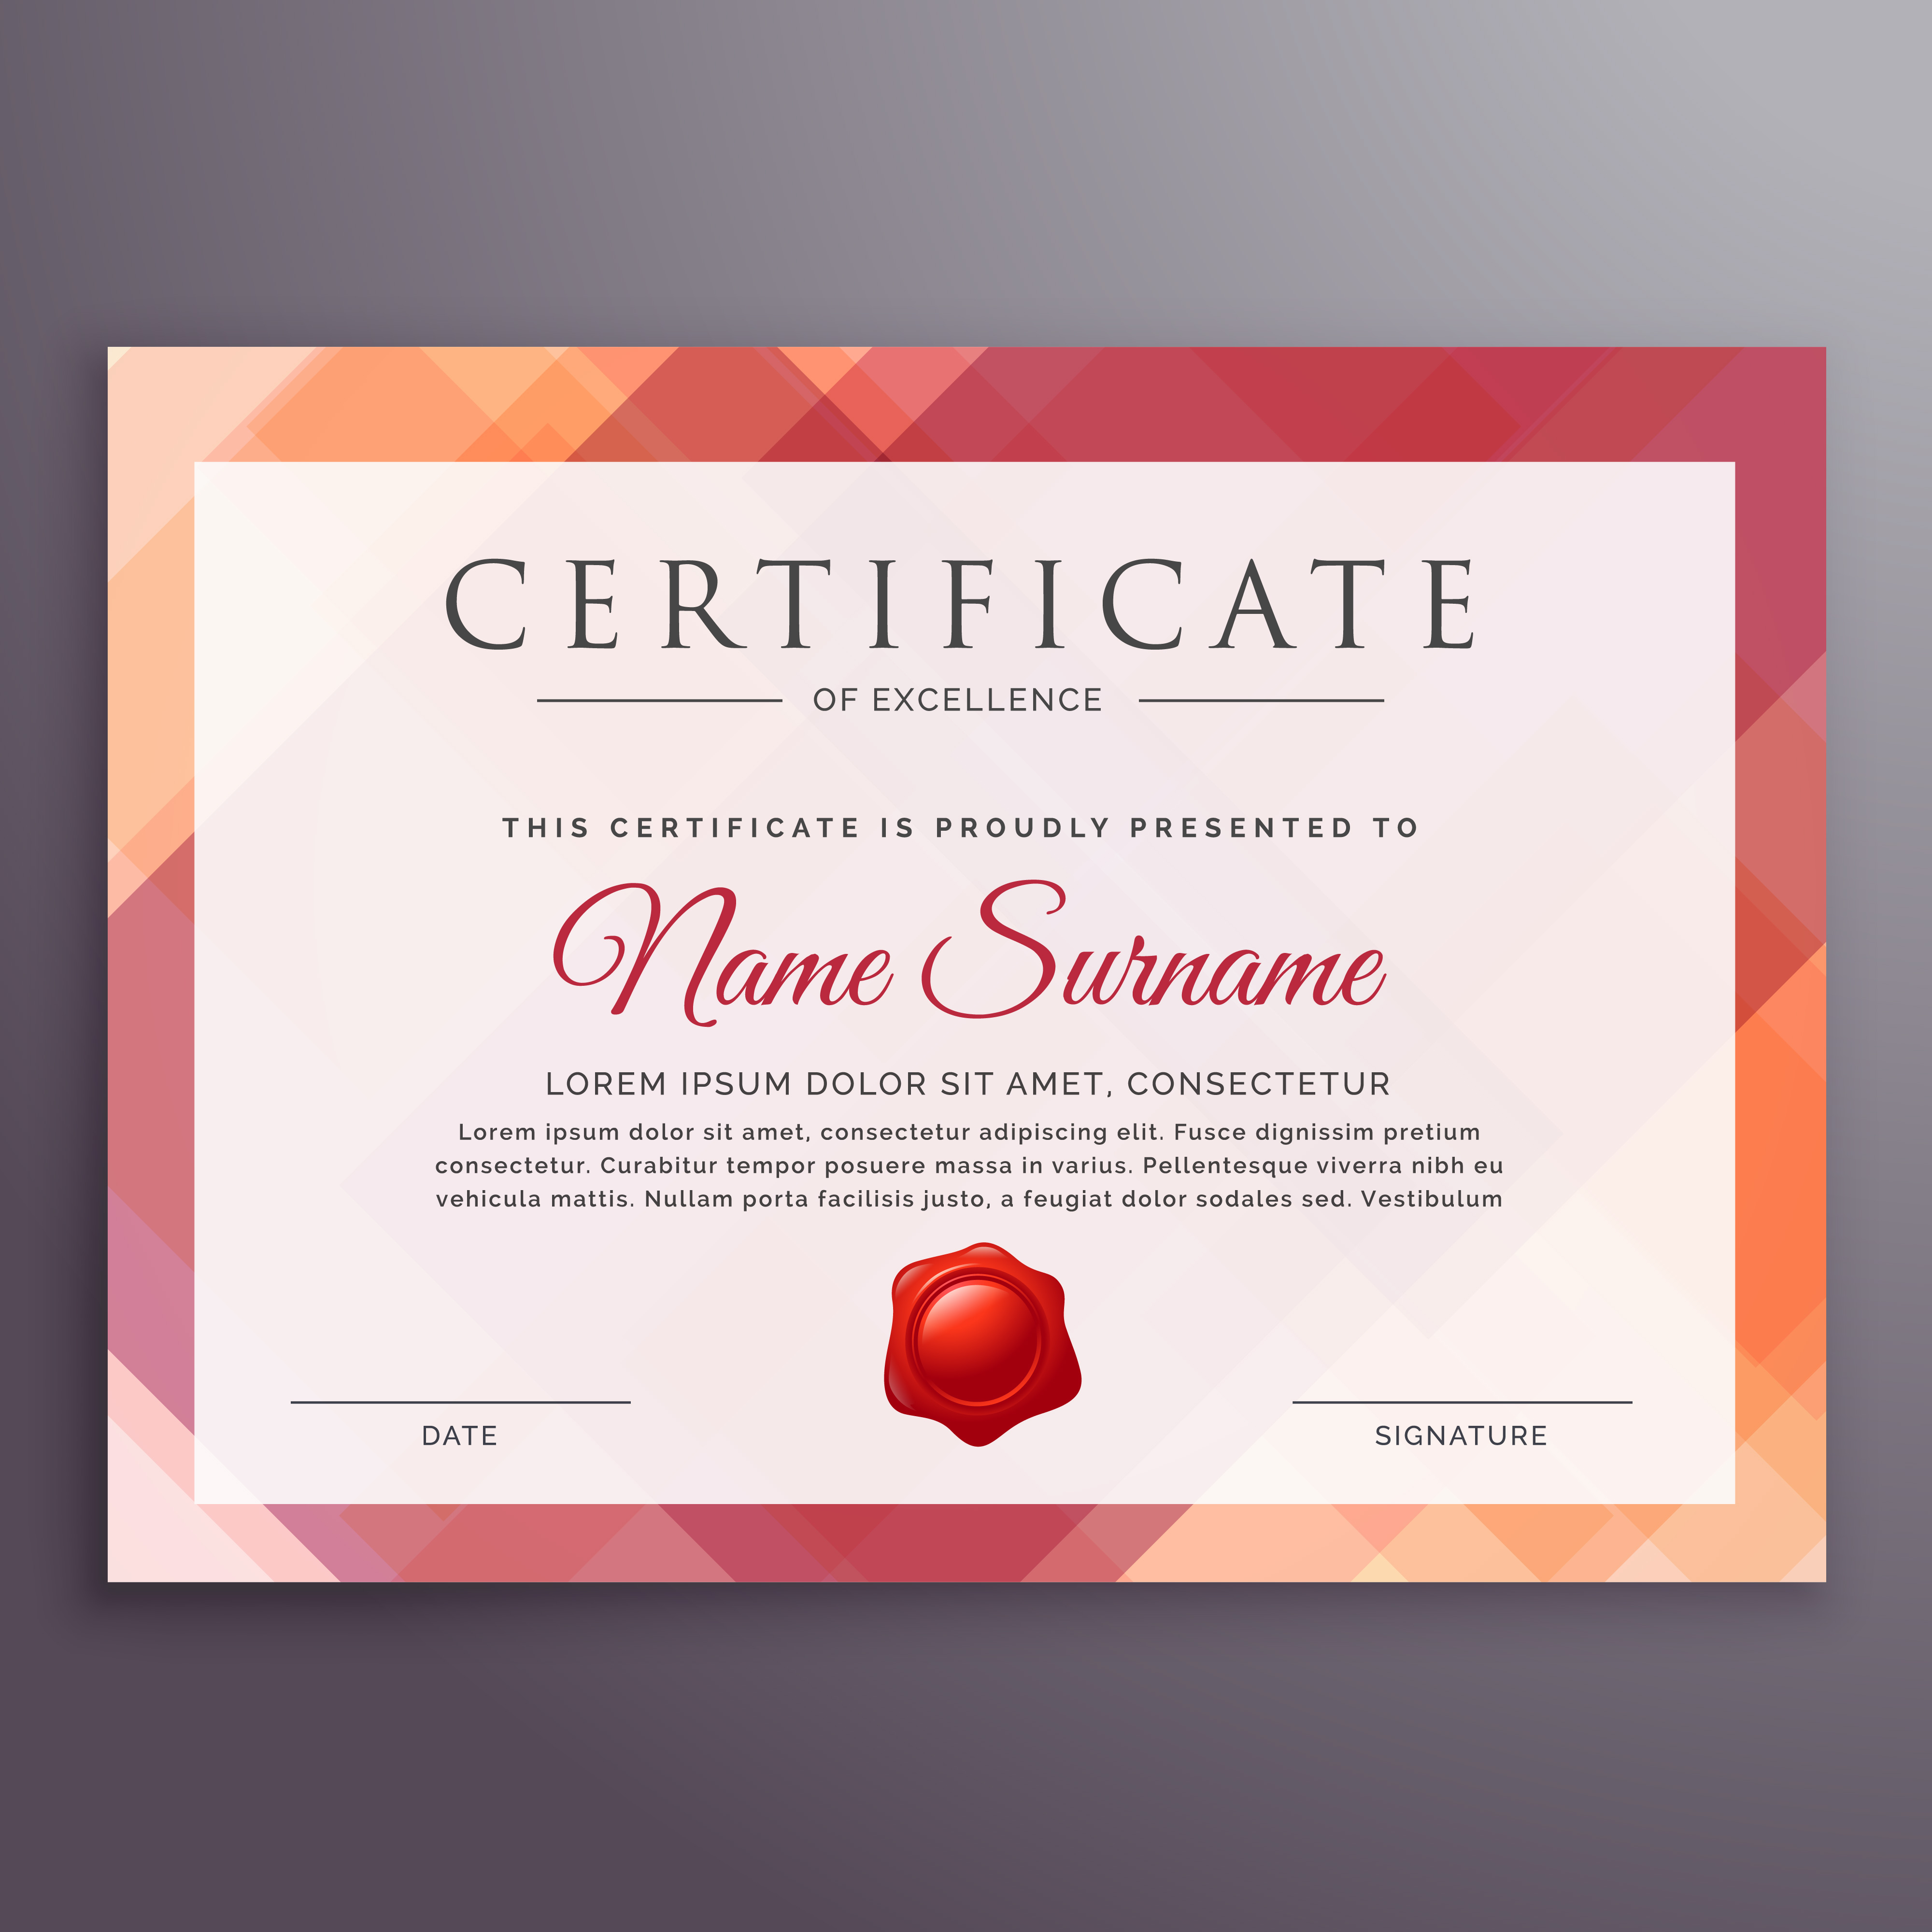 Abstract Certificate Template Design Vector Download Free Vector